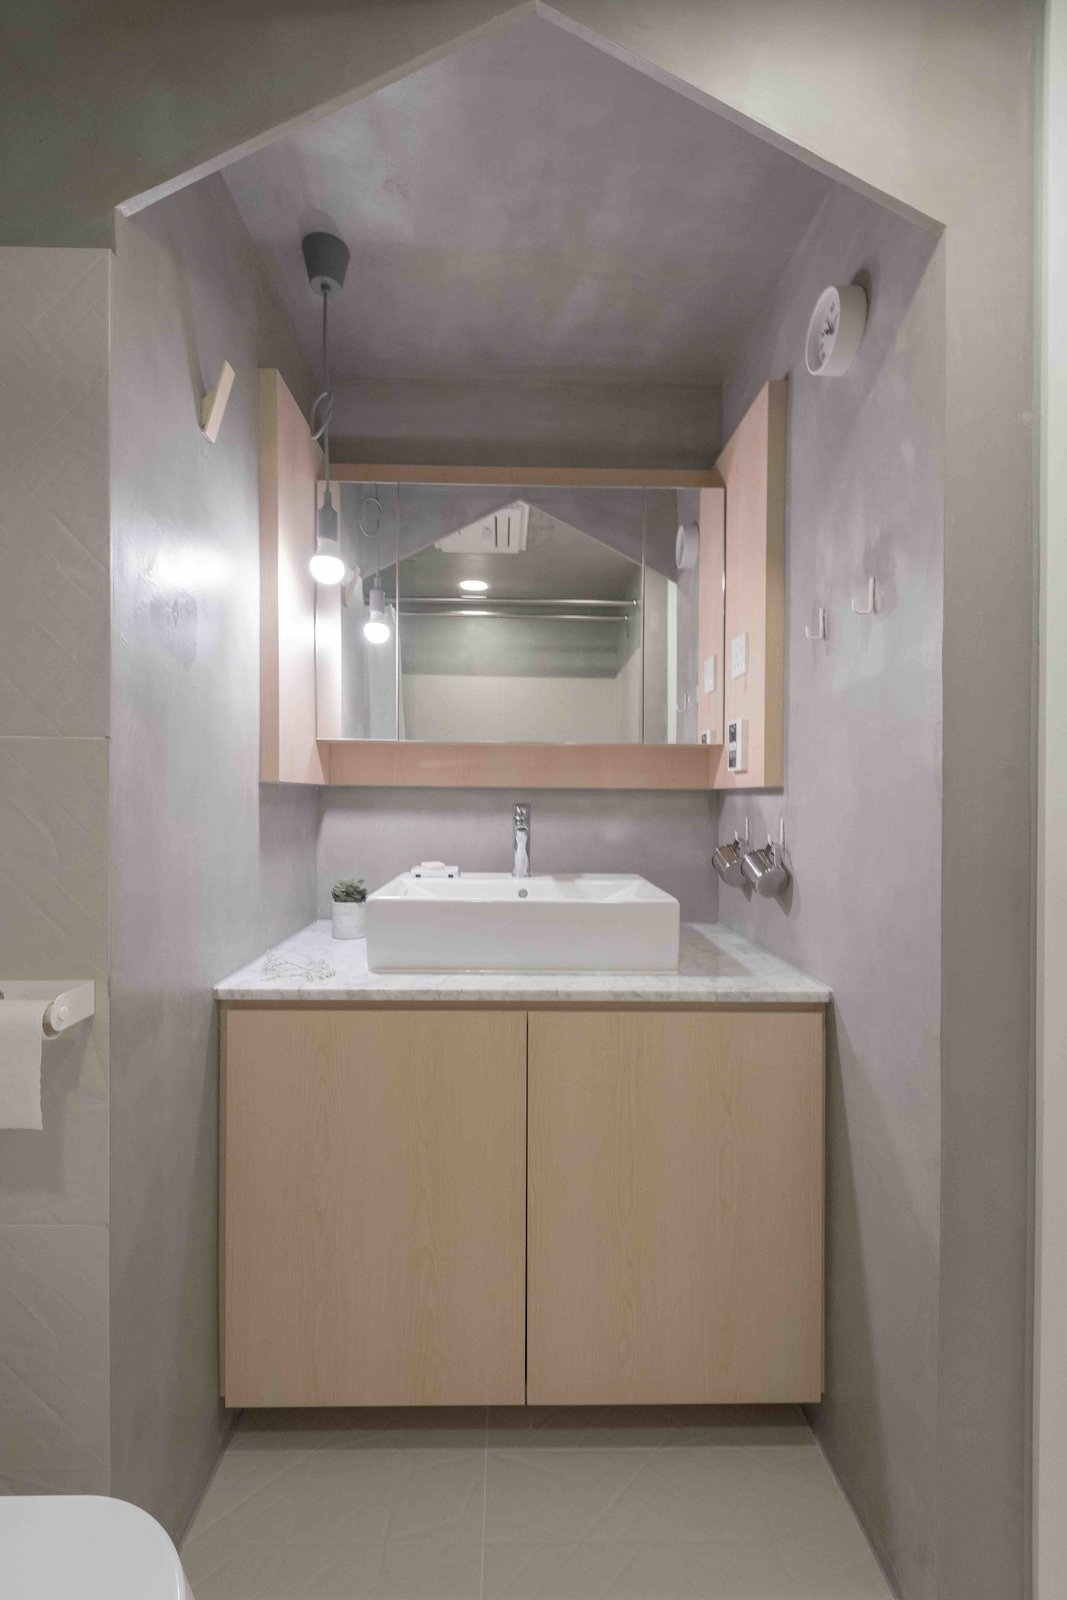 Bath Room, Vessel Sink, Marble Counter, and Ceiling Lighting  Photo 8 of 15 in An Origami-Inspired Apartment in Hong Kong With Tons of Smart Storage